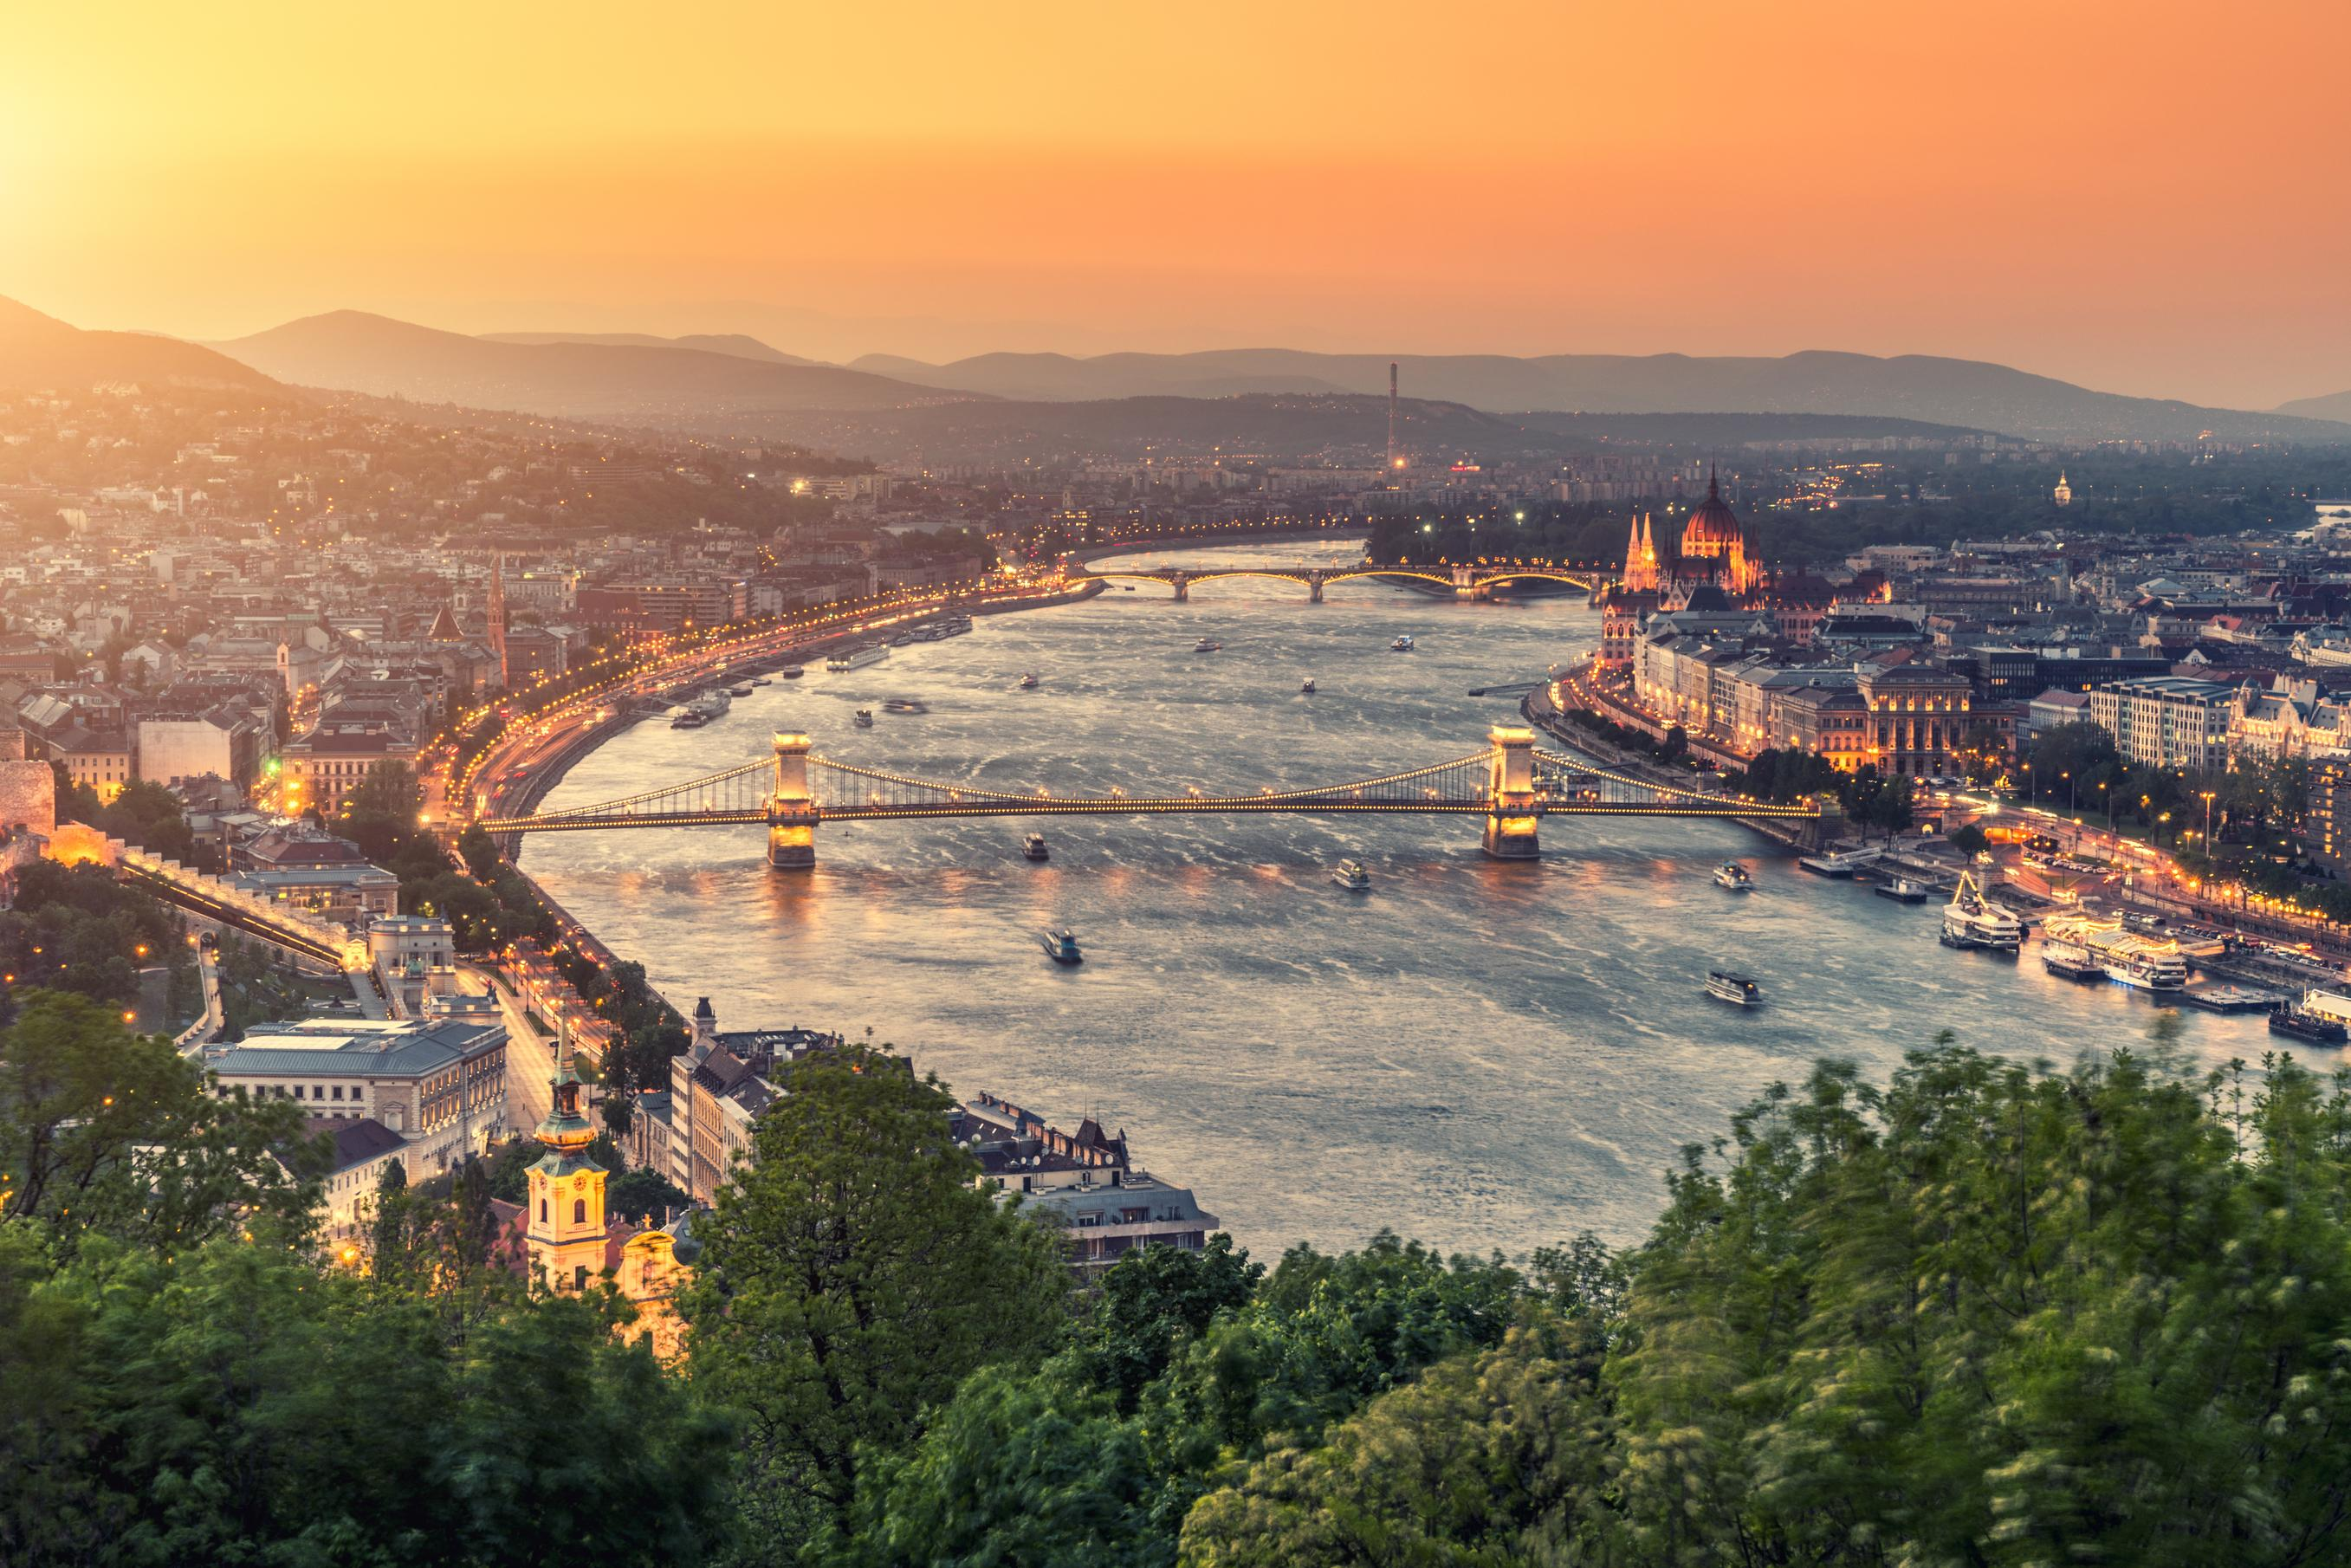 Scenic Luxury Cruises Amp Tours All Tours Amp Trips In 2018